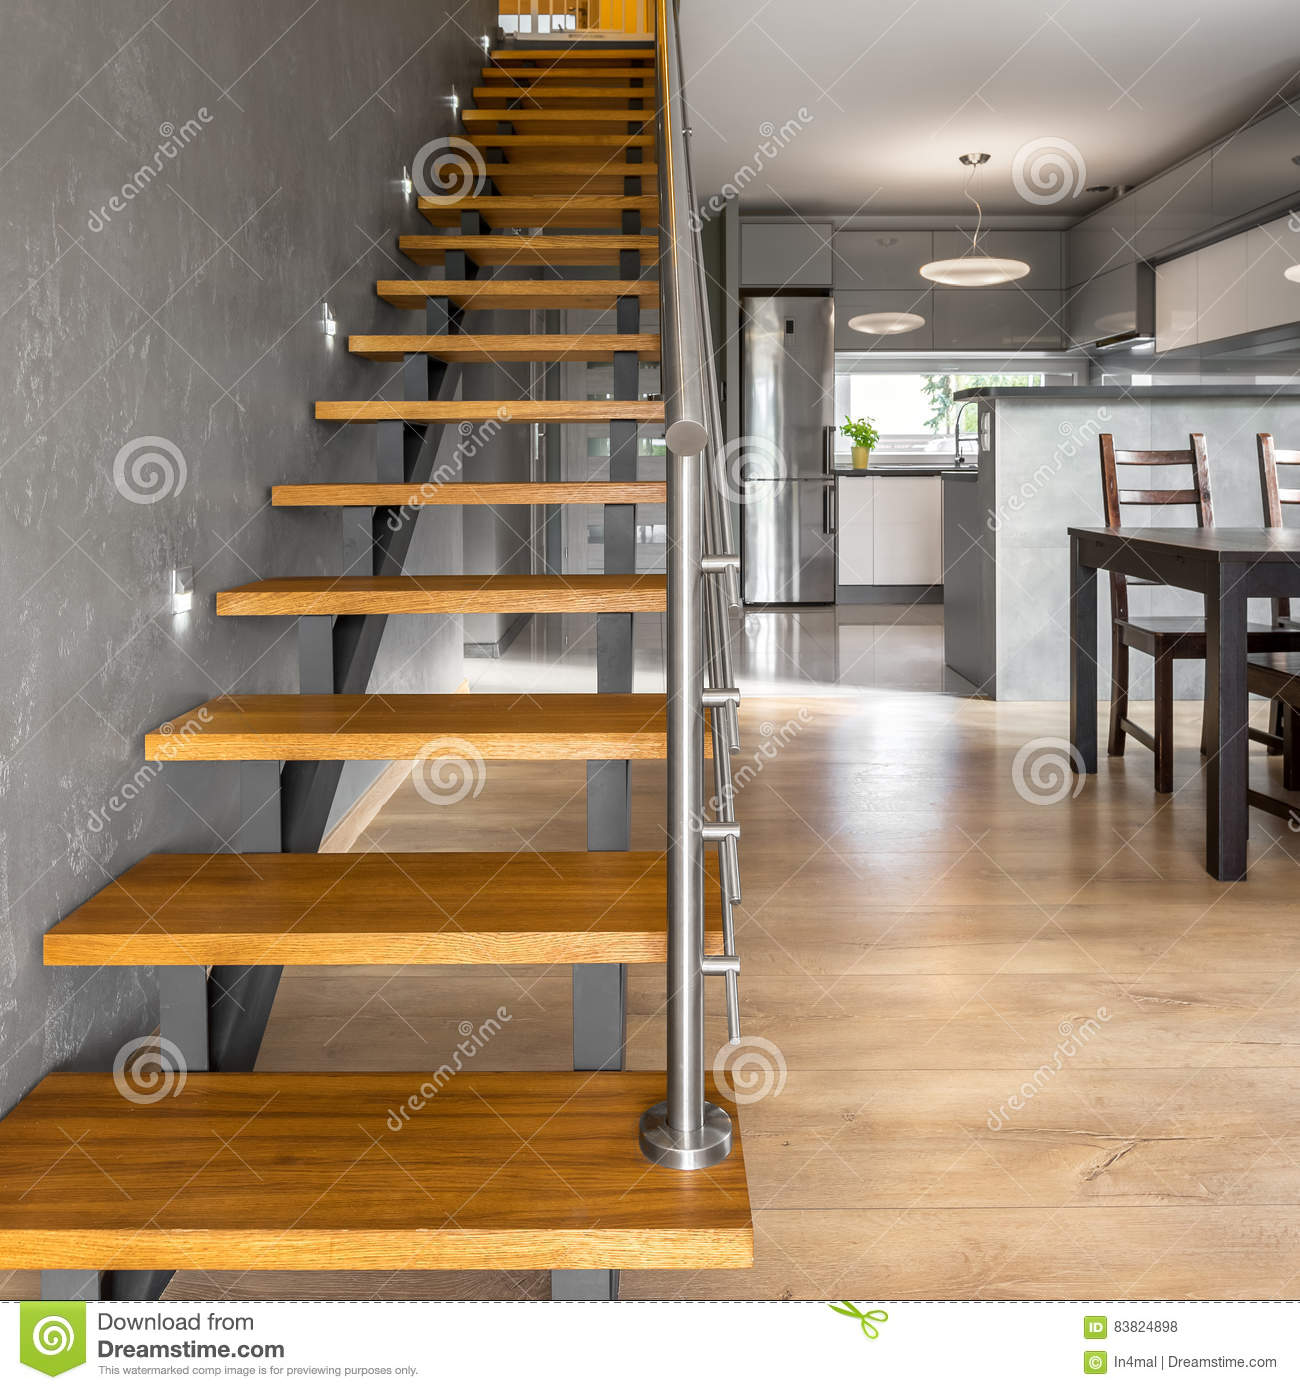 Escaliers En Bois En Villa Moderne Photo stock - Image du ...